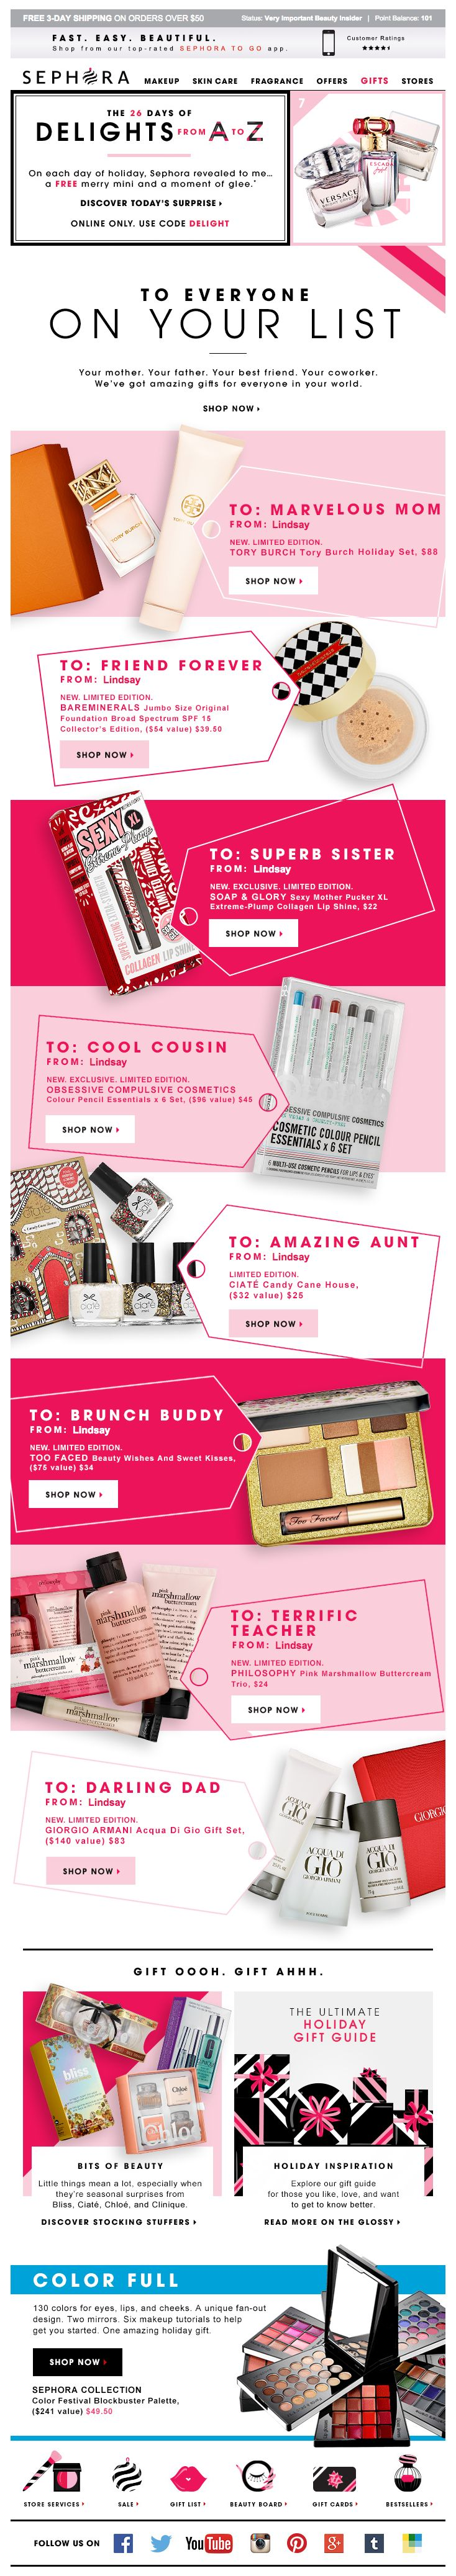 Sephora holiday gift email 2014